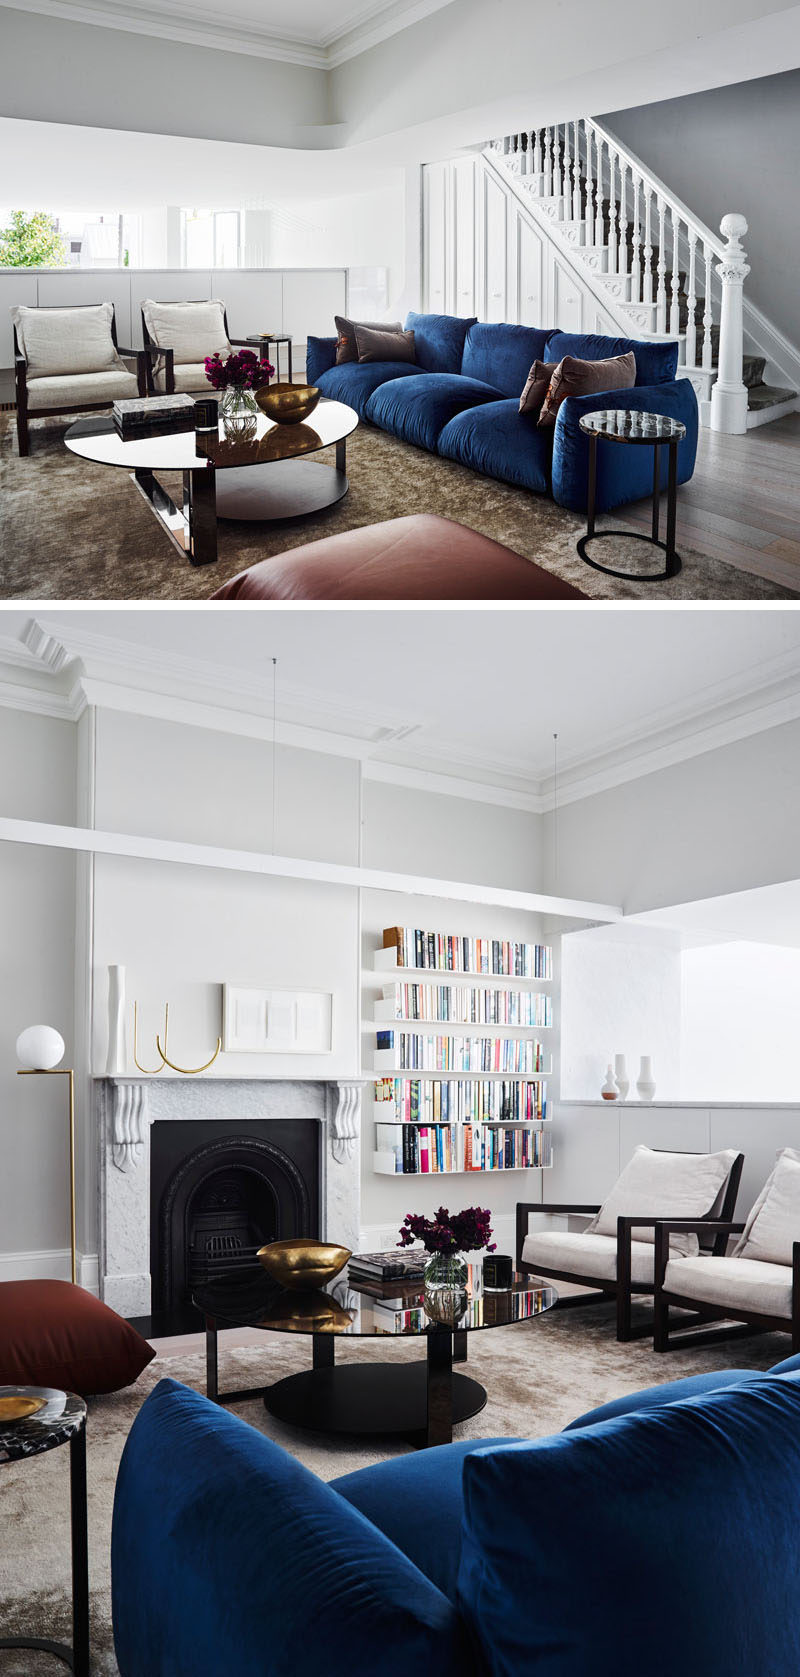 Inside this renovated Victorian house, there's a formal living room with some original features, like the fireplace, that have been combined with contemporary elements, like the shelving. #LivingRoom #Shelving #Fireplace